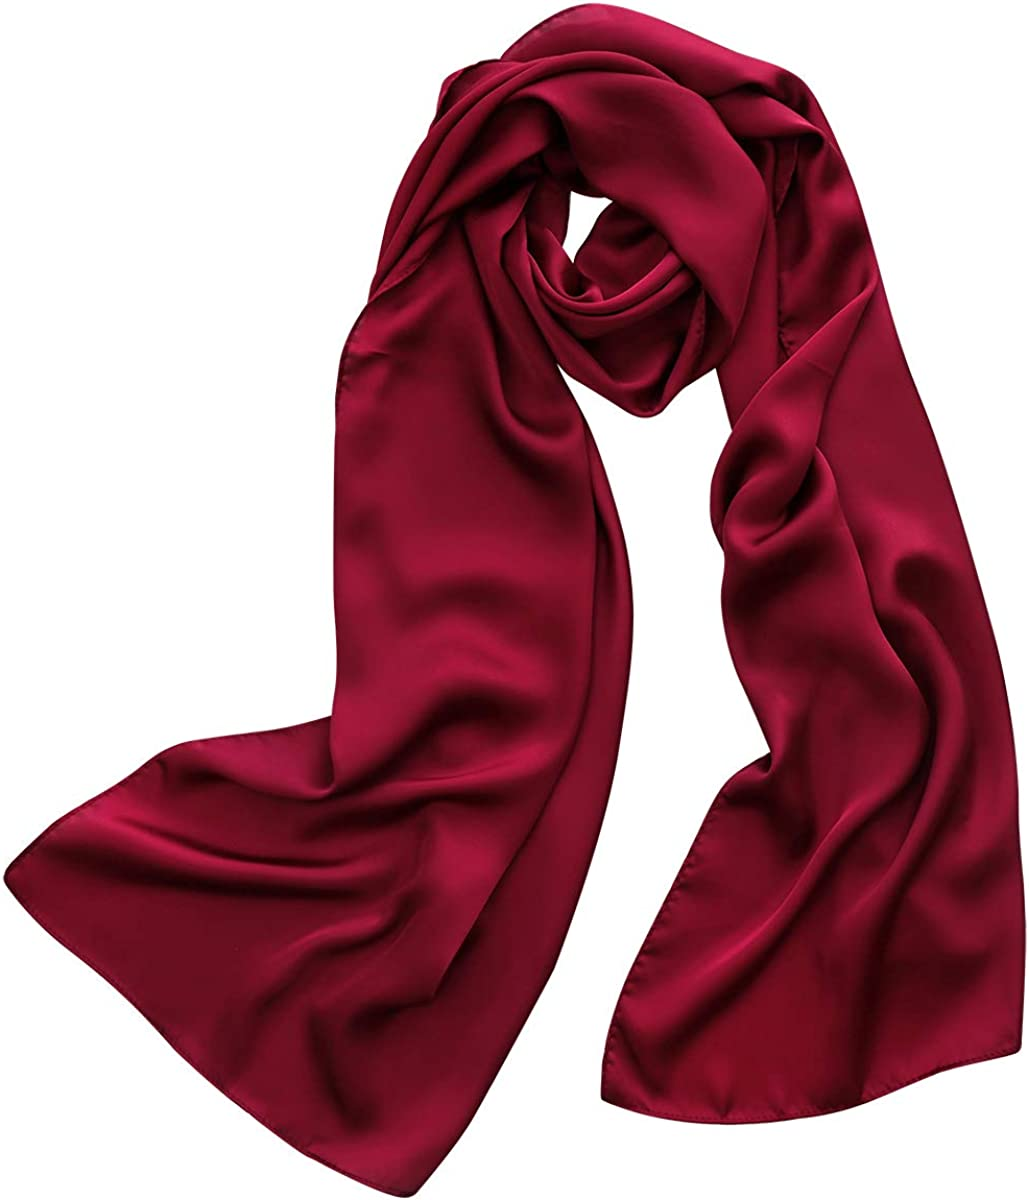 M.Picchu Polyester Silky Scarfs, Longue Scarf Solid Shawl for Women Protection - 18x72 inch